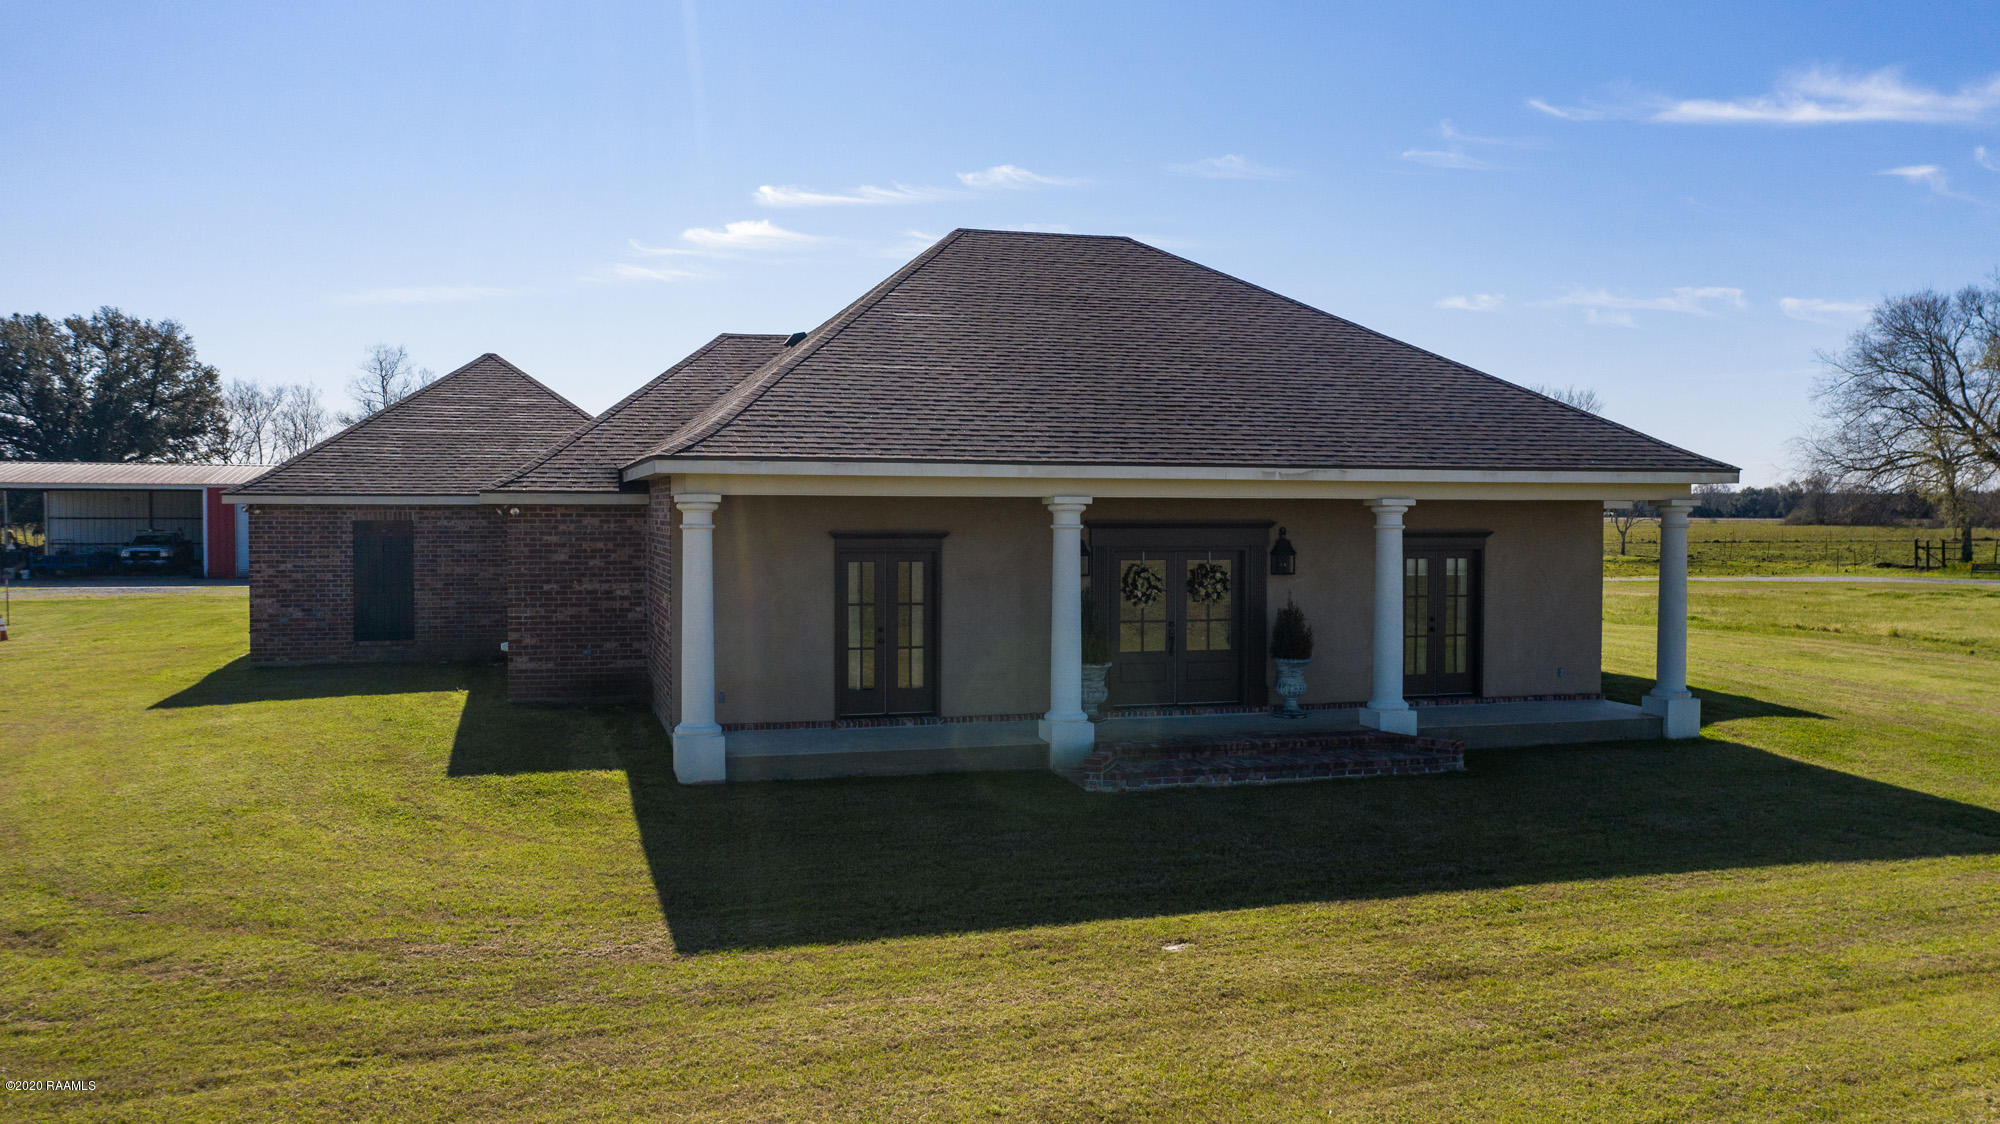 818 L'Anse De Cavailer Road, Ville Platte, LA 70586 Photo #2